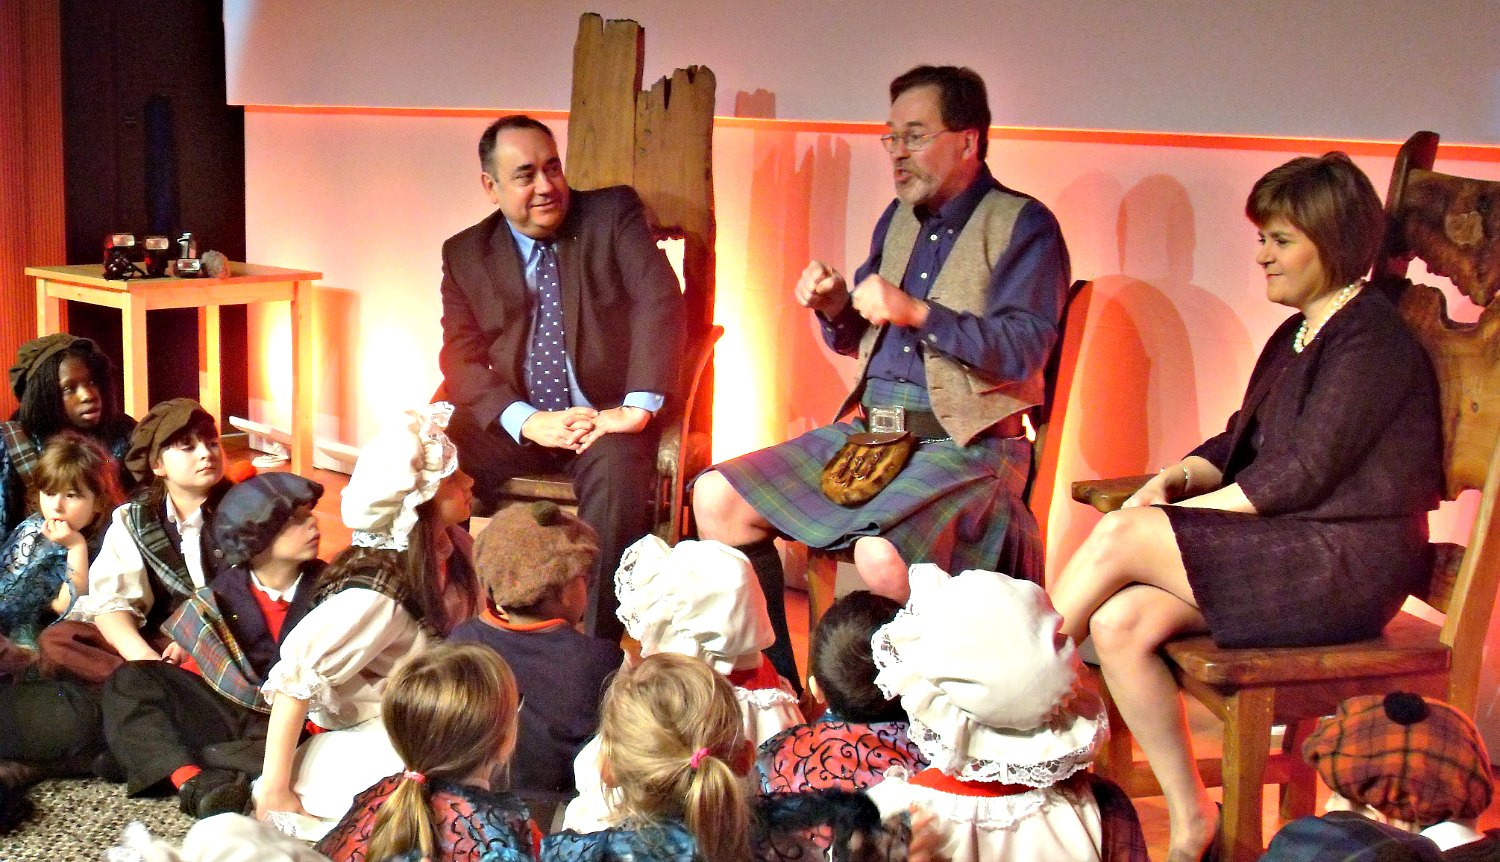 Donald Smith tells tales of Robert Burns to Royal Mile Primary School children. Senior figures of the Scottish National Party, Alex Salmond and Nicola Sturgeon, listen in. Credit: Lindsay Corr.